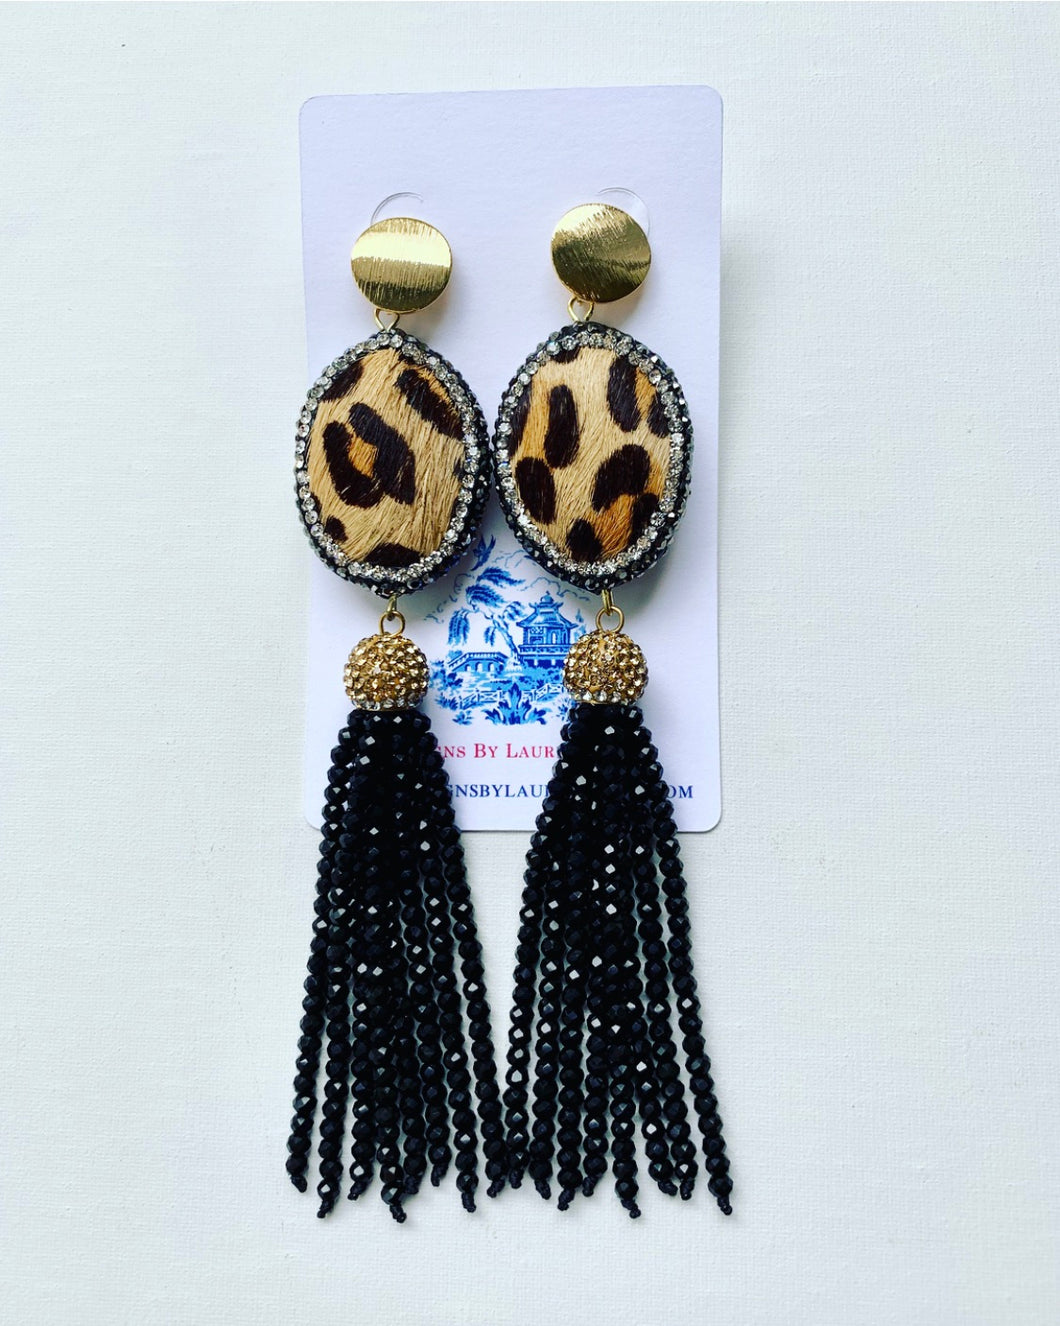 Dressy Seed Bead Tassel Statement Earrings - Gold & Black Leopard - Ginger jar